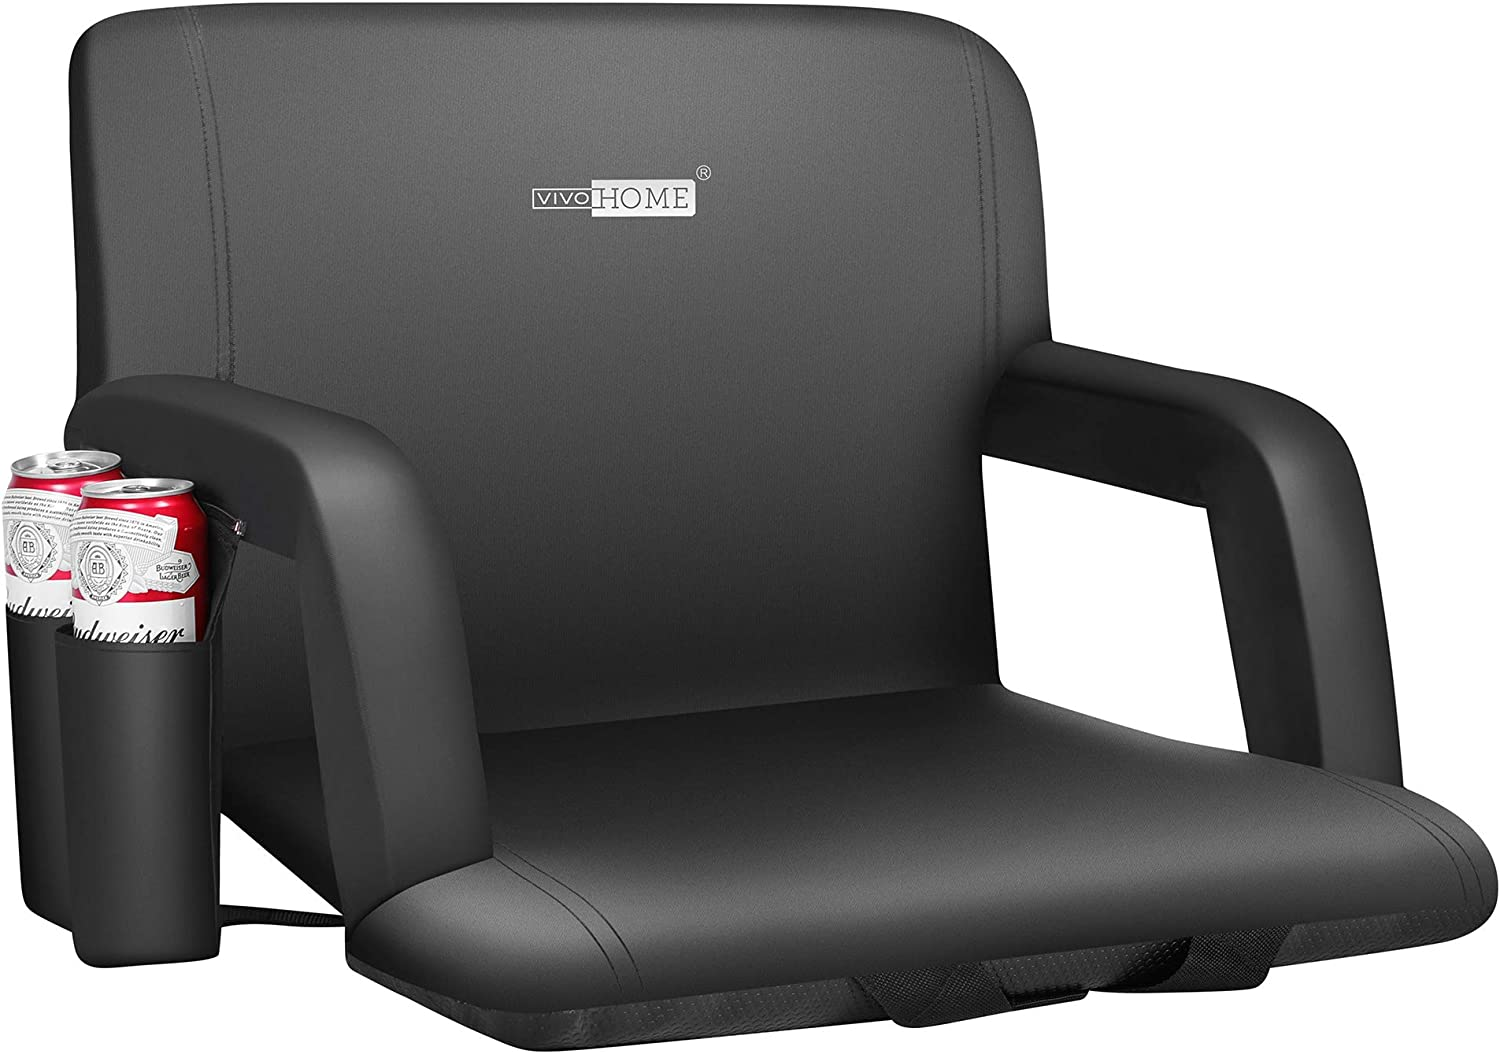 VIVOHOME 24.5 Inch Extra Wide Reclining Stadium Seat Chair with Backrest and Armrests, Portable Cushion for Bleachers